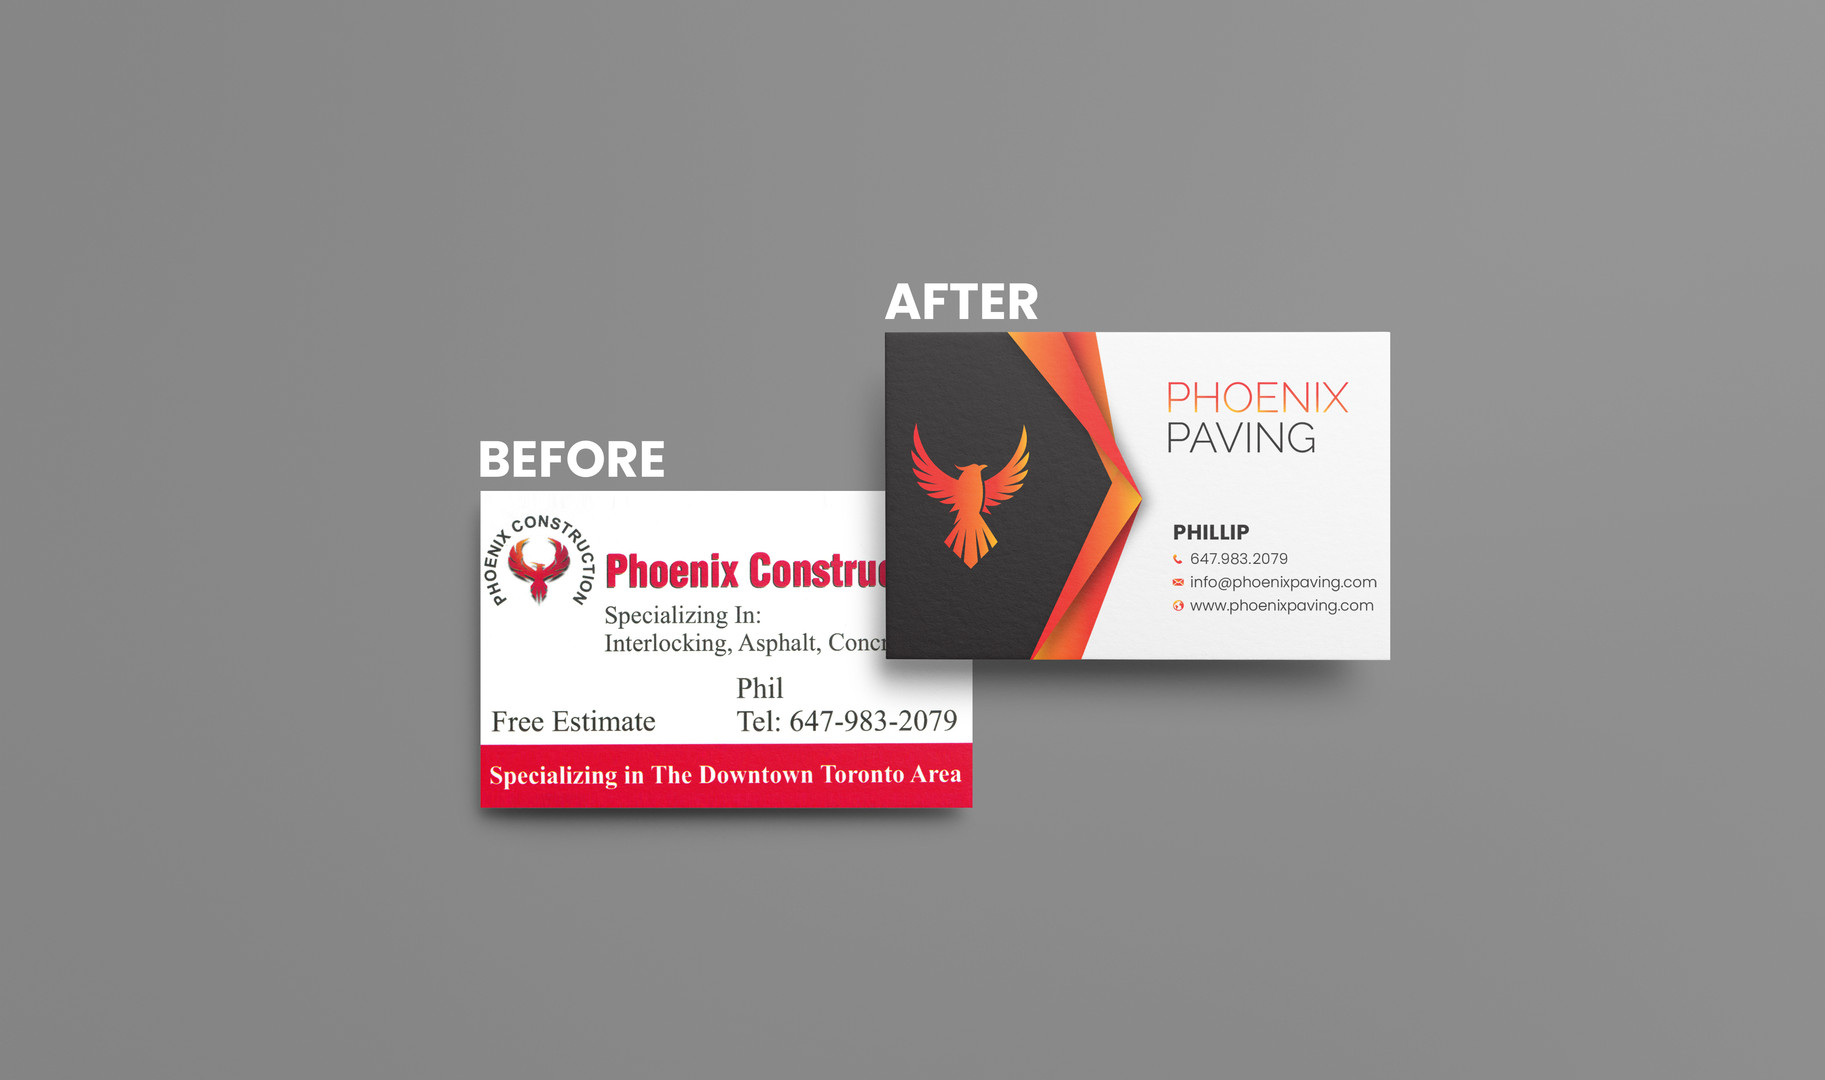 Before & After of Phoenix Paving's Rebrand